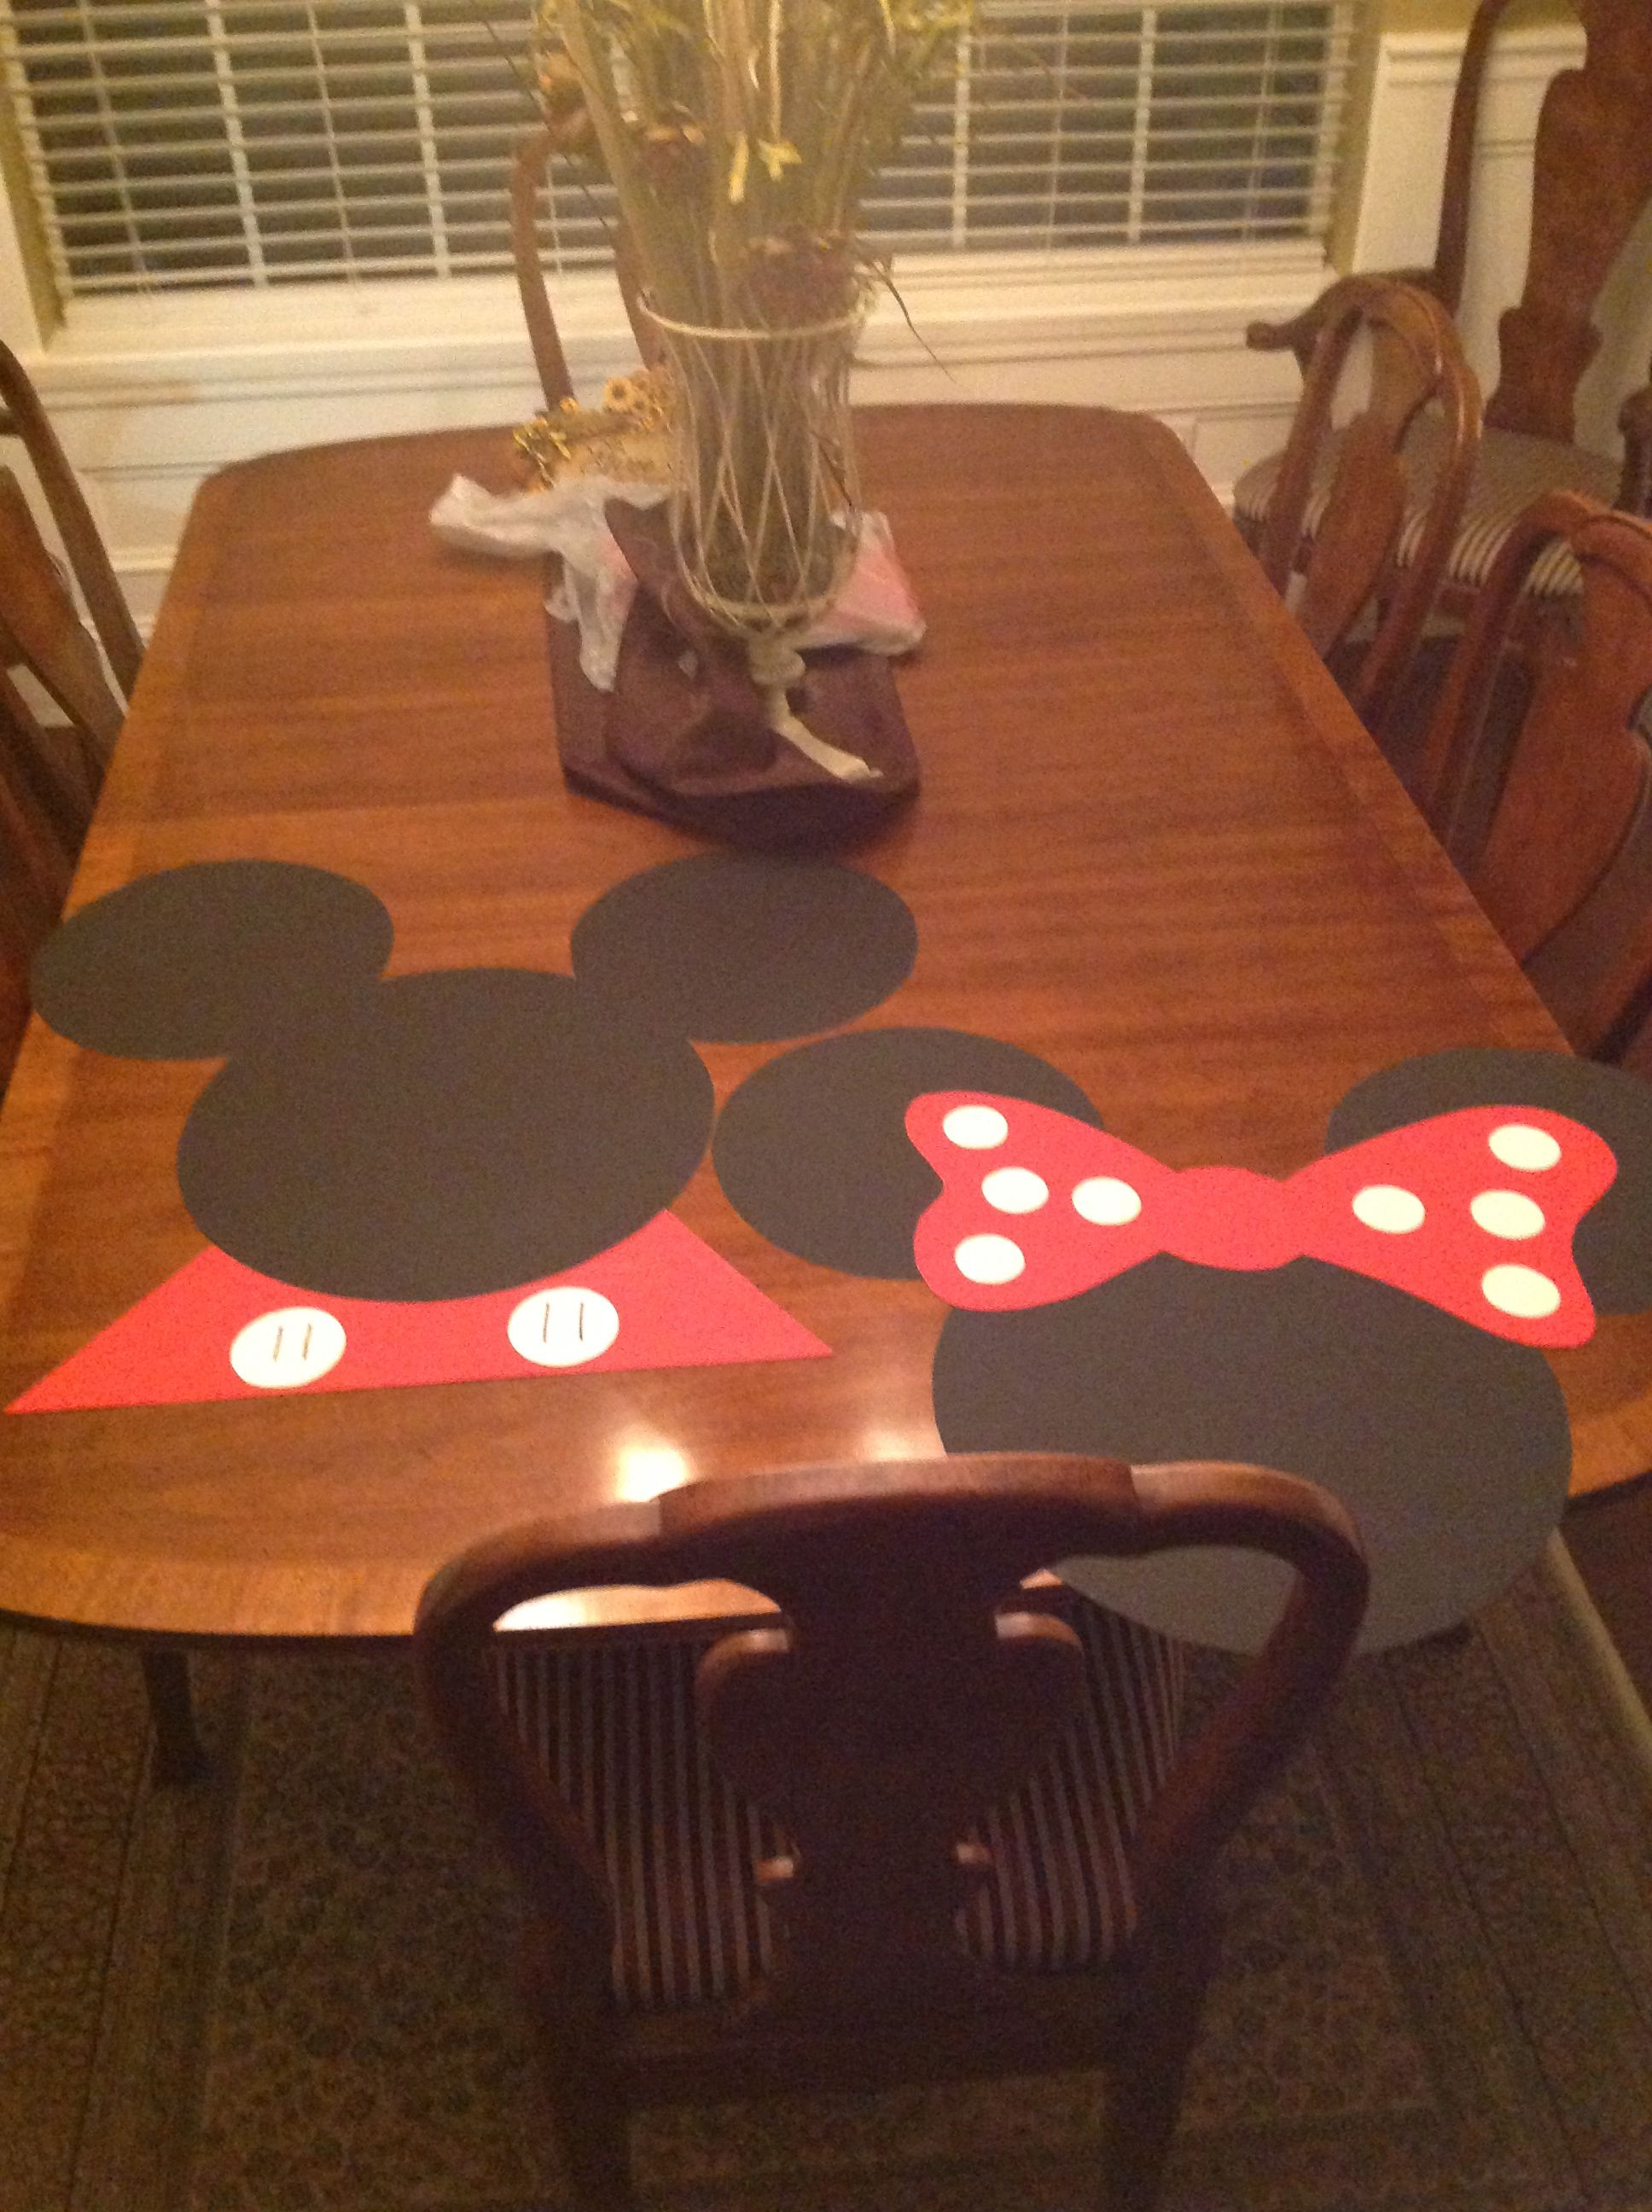 Beste Poster board Mickey and Minnie Used for photo collage display at HK-38